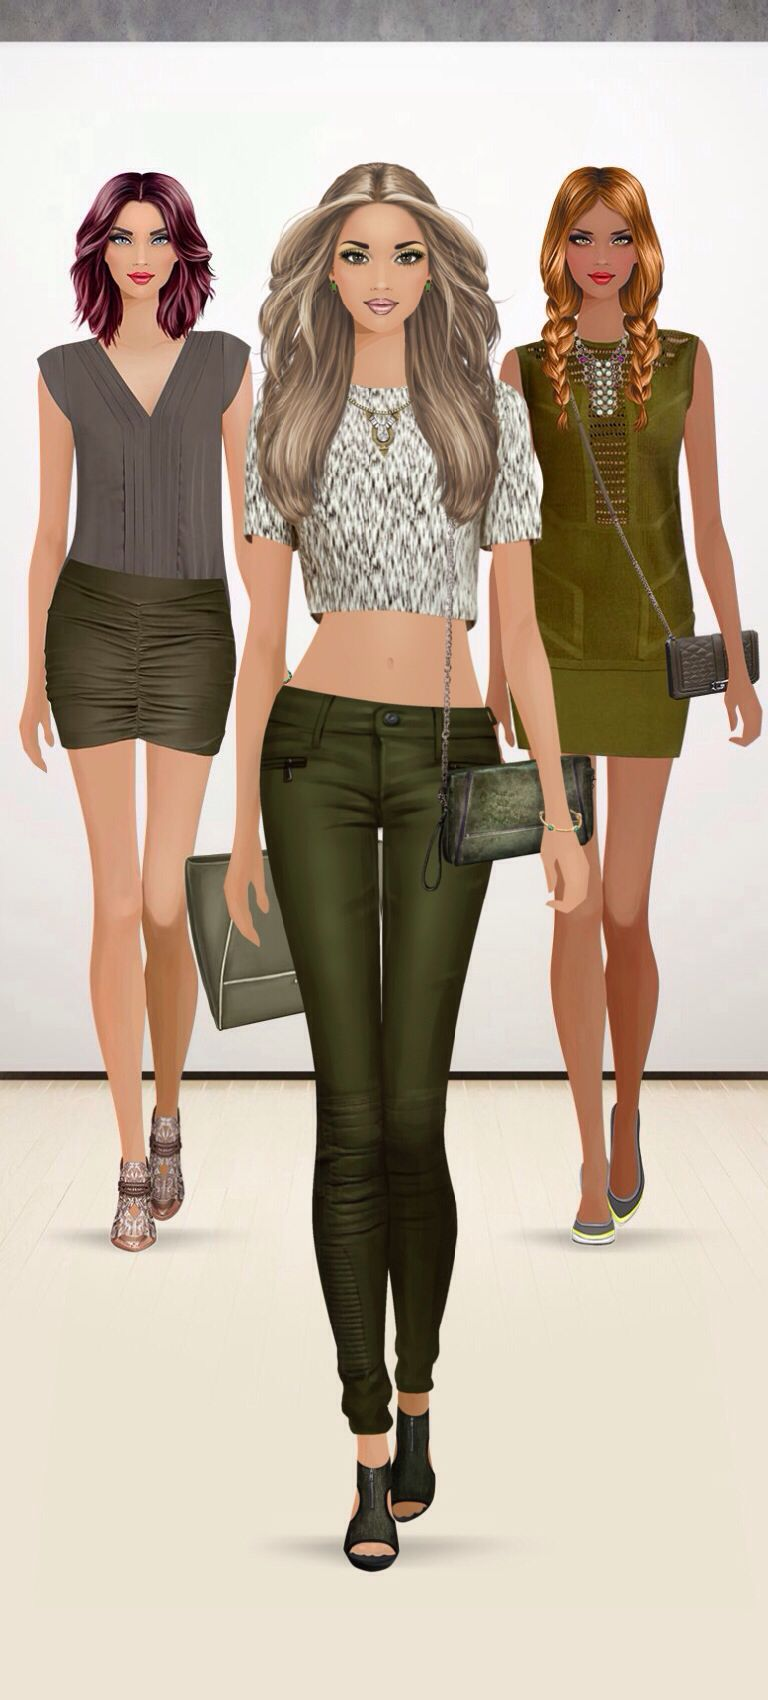 Style Match Olive Green Covet Fashion Pinterest Covet Fashion